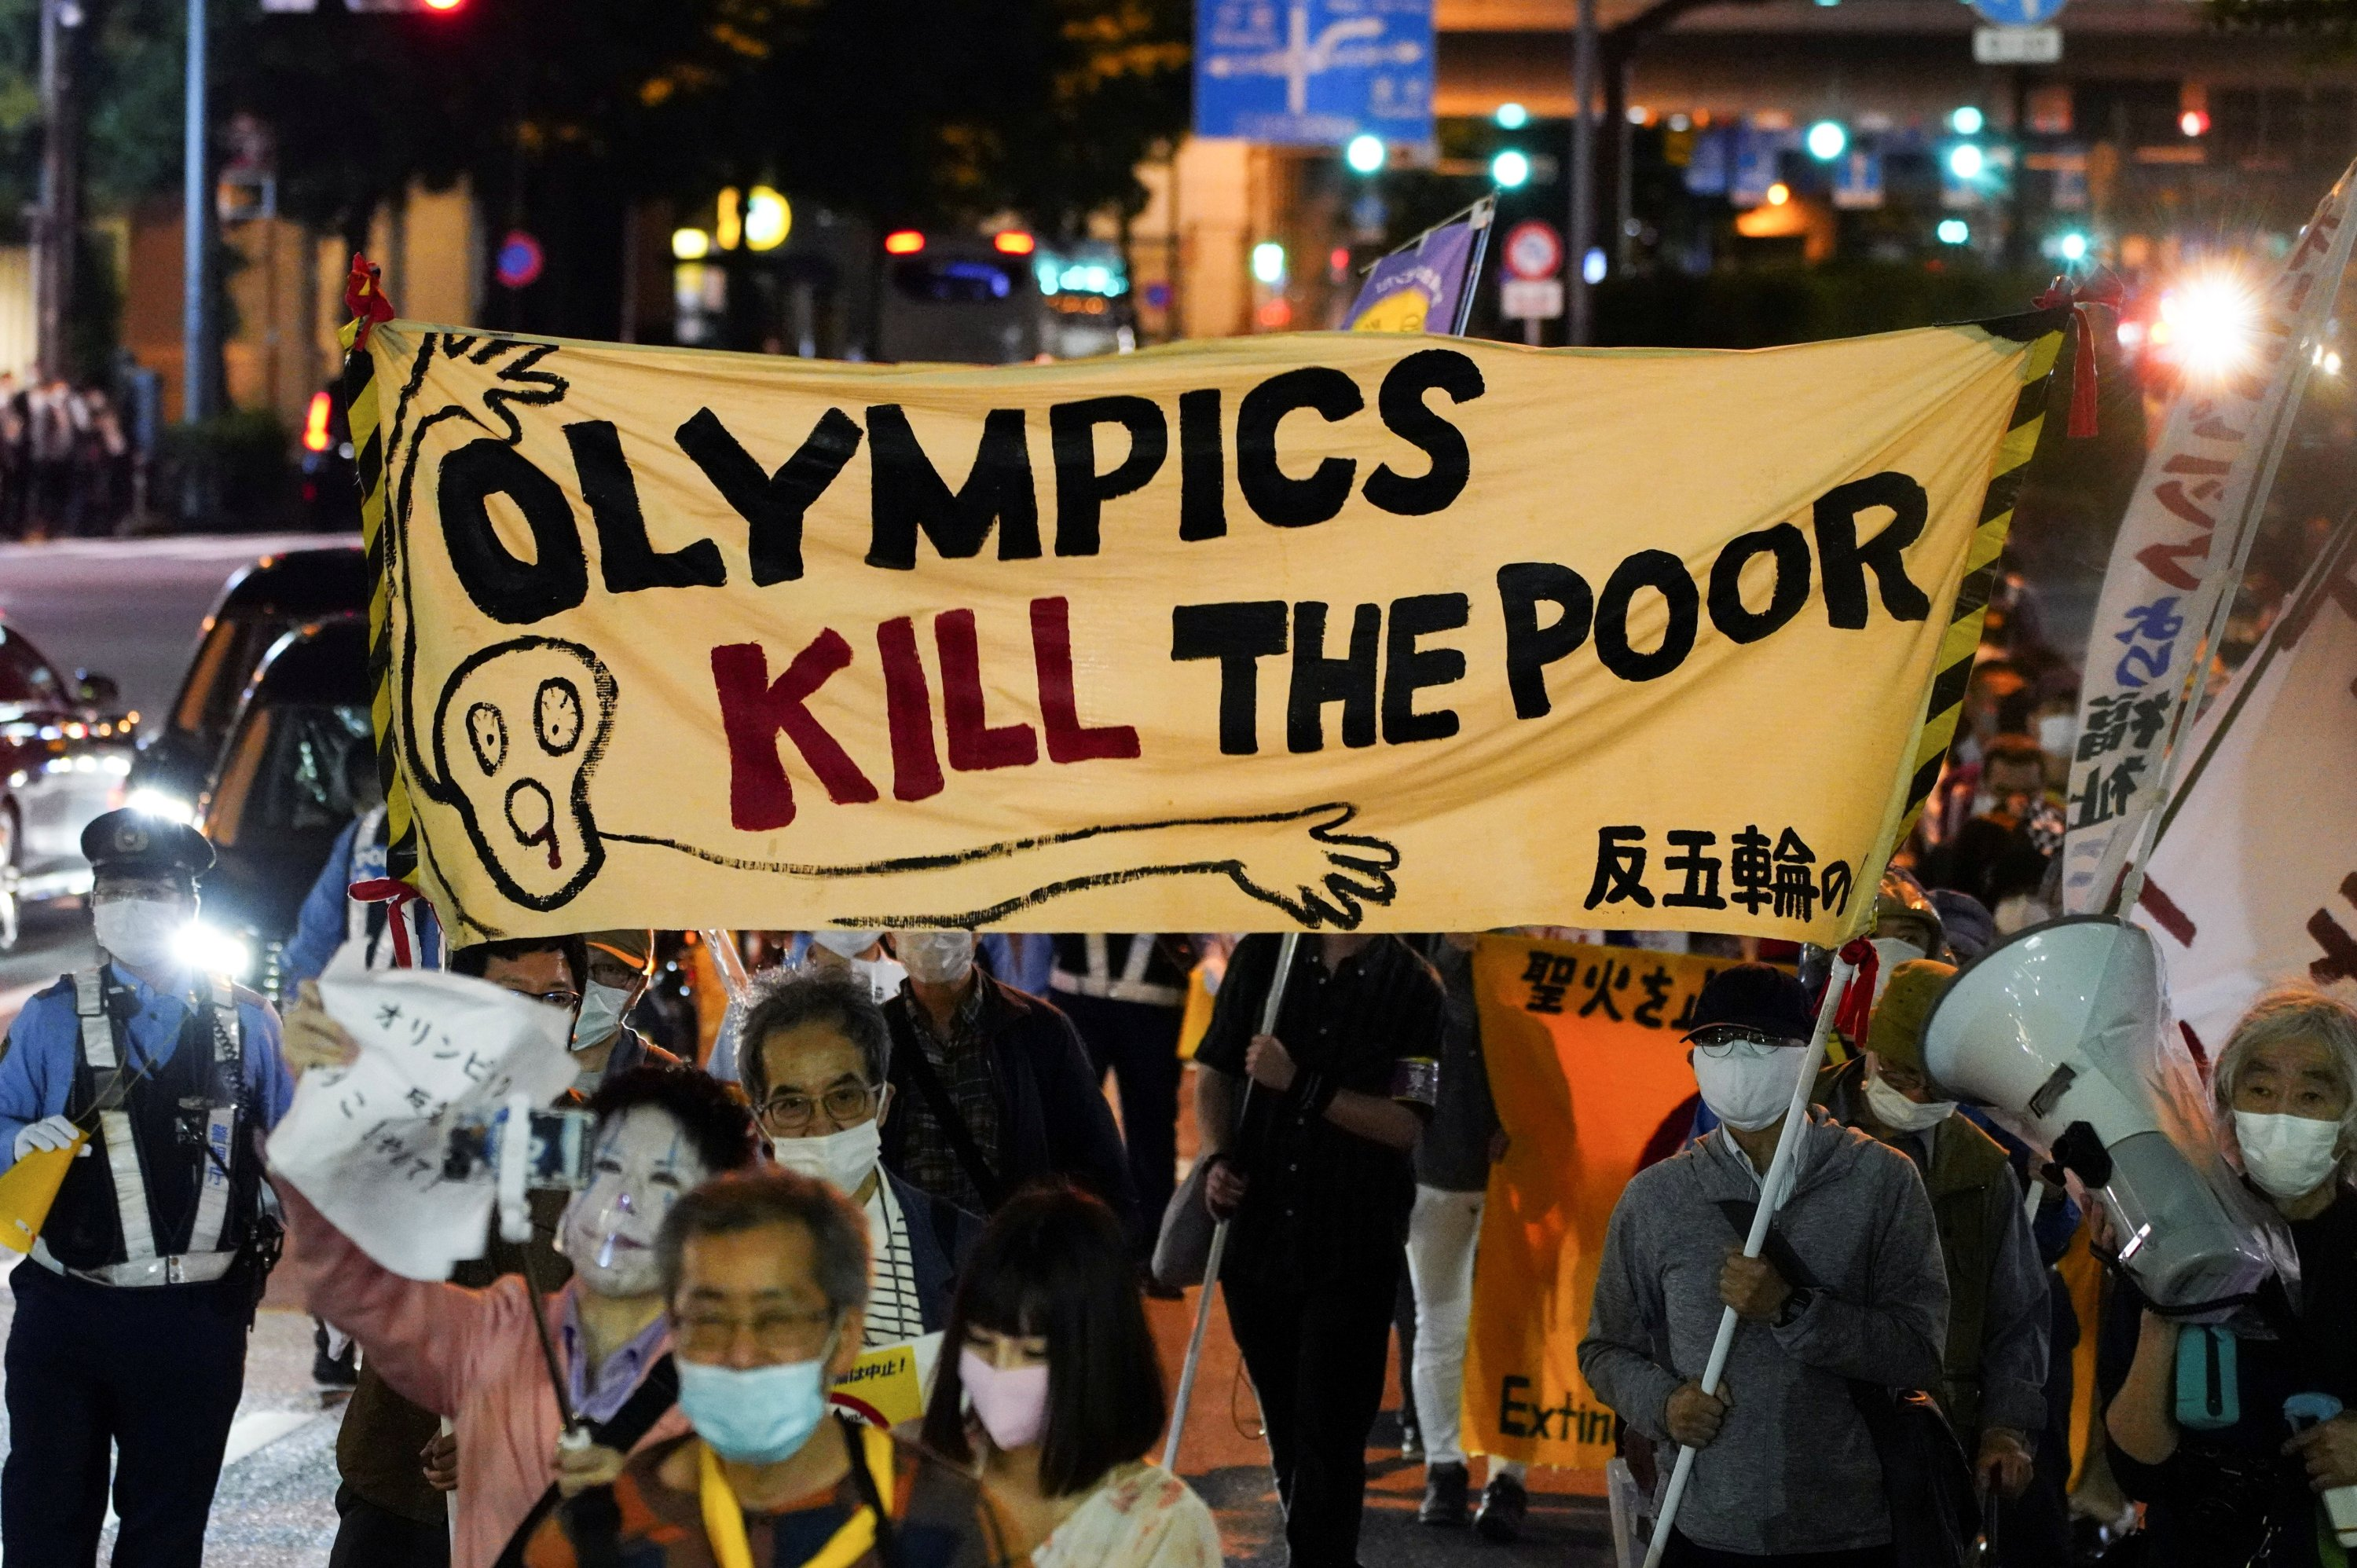 Anti-Olympics group members carry banners during a protest march, amid the COVID-19 outbreak, Tokyo, Japan, May 17, 2021. (Reuters Photo)